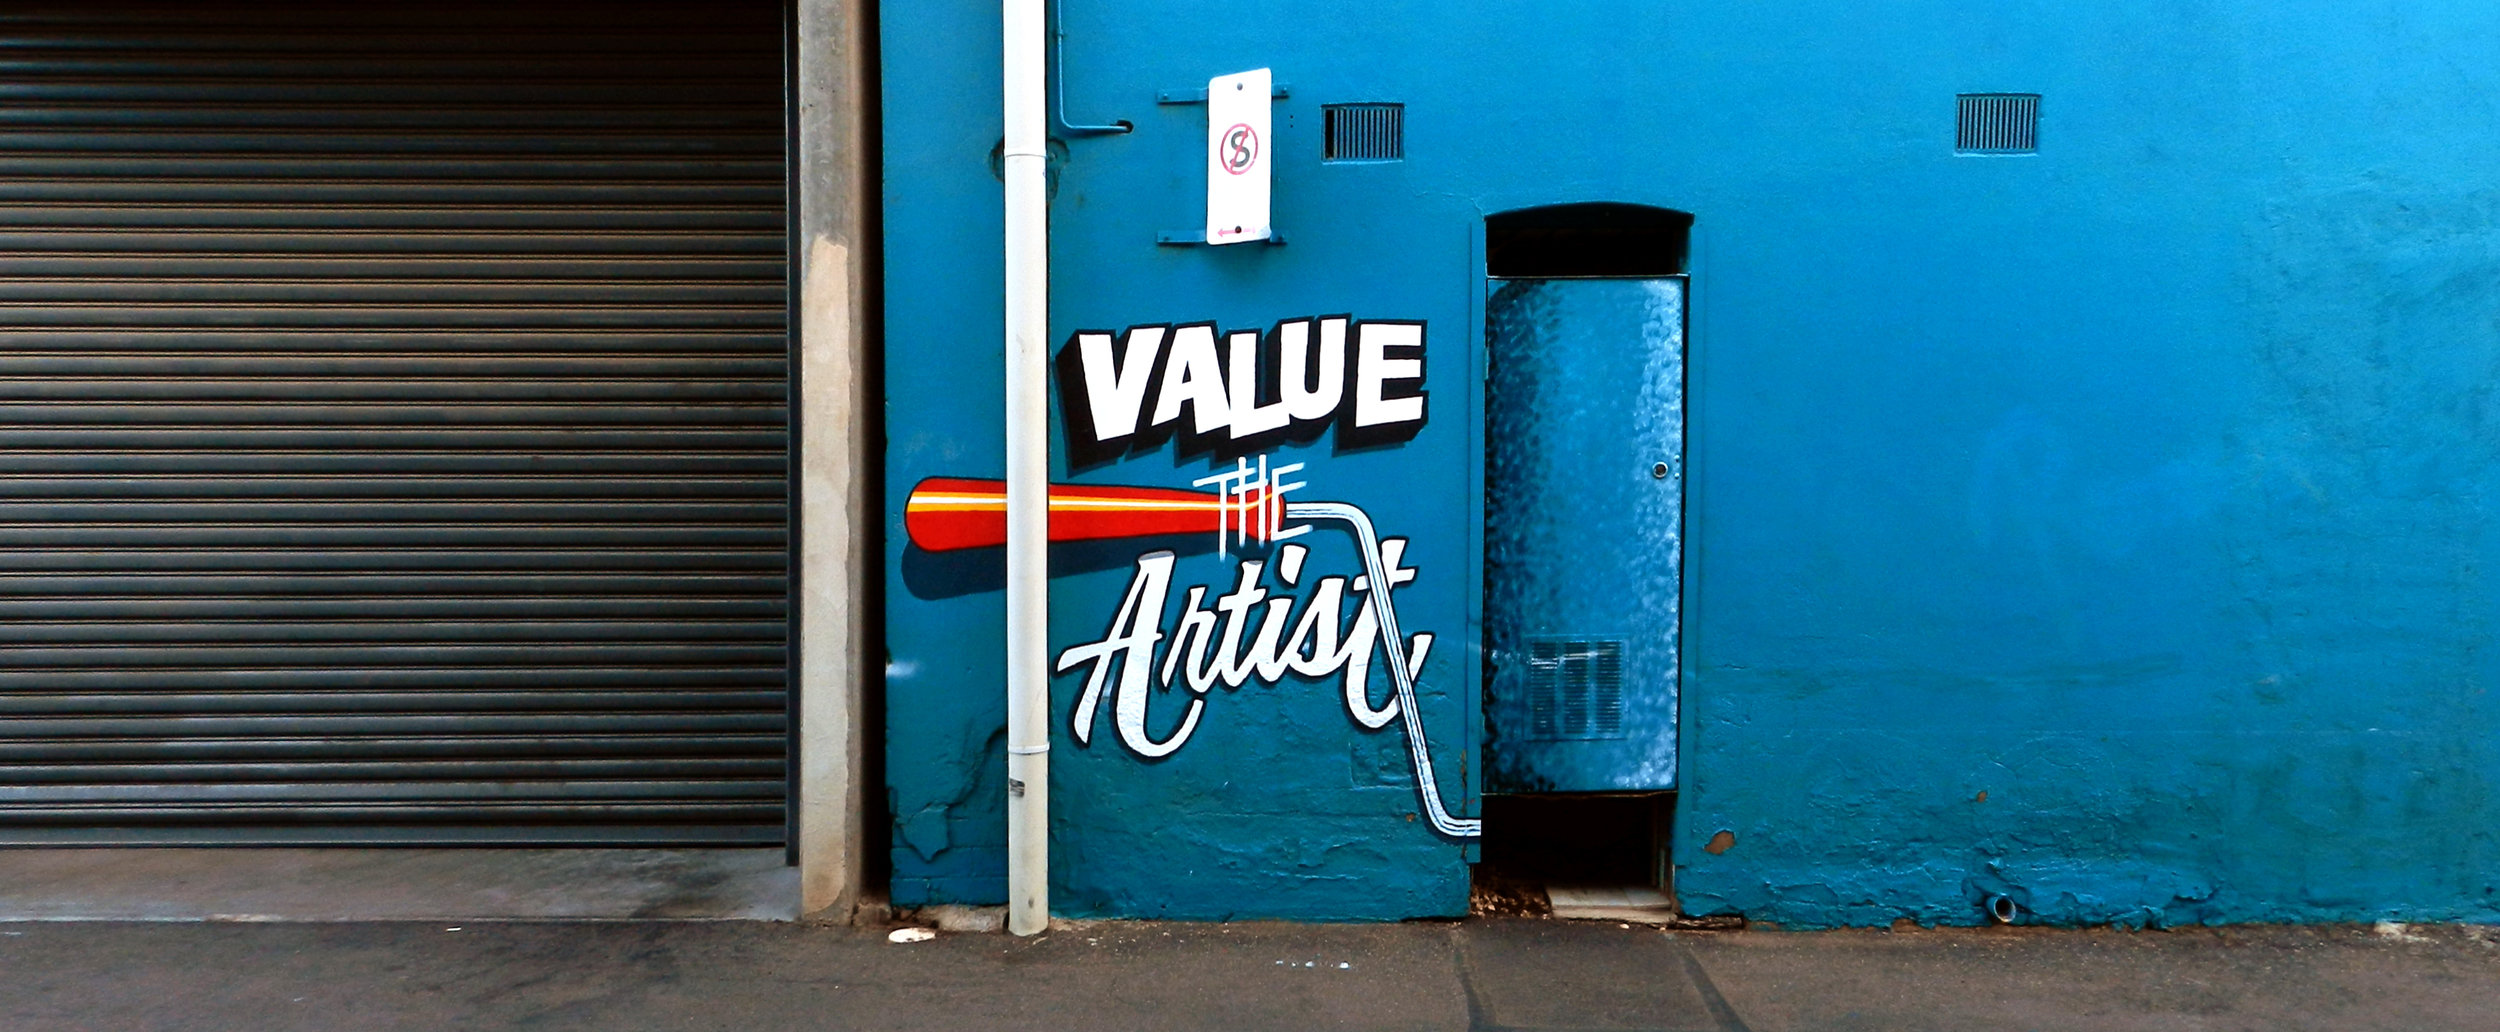 Value the artist , collaborative mural by Terry (Moose) McGowan and Wendy Murray, 2016